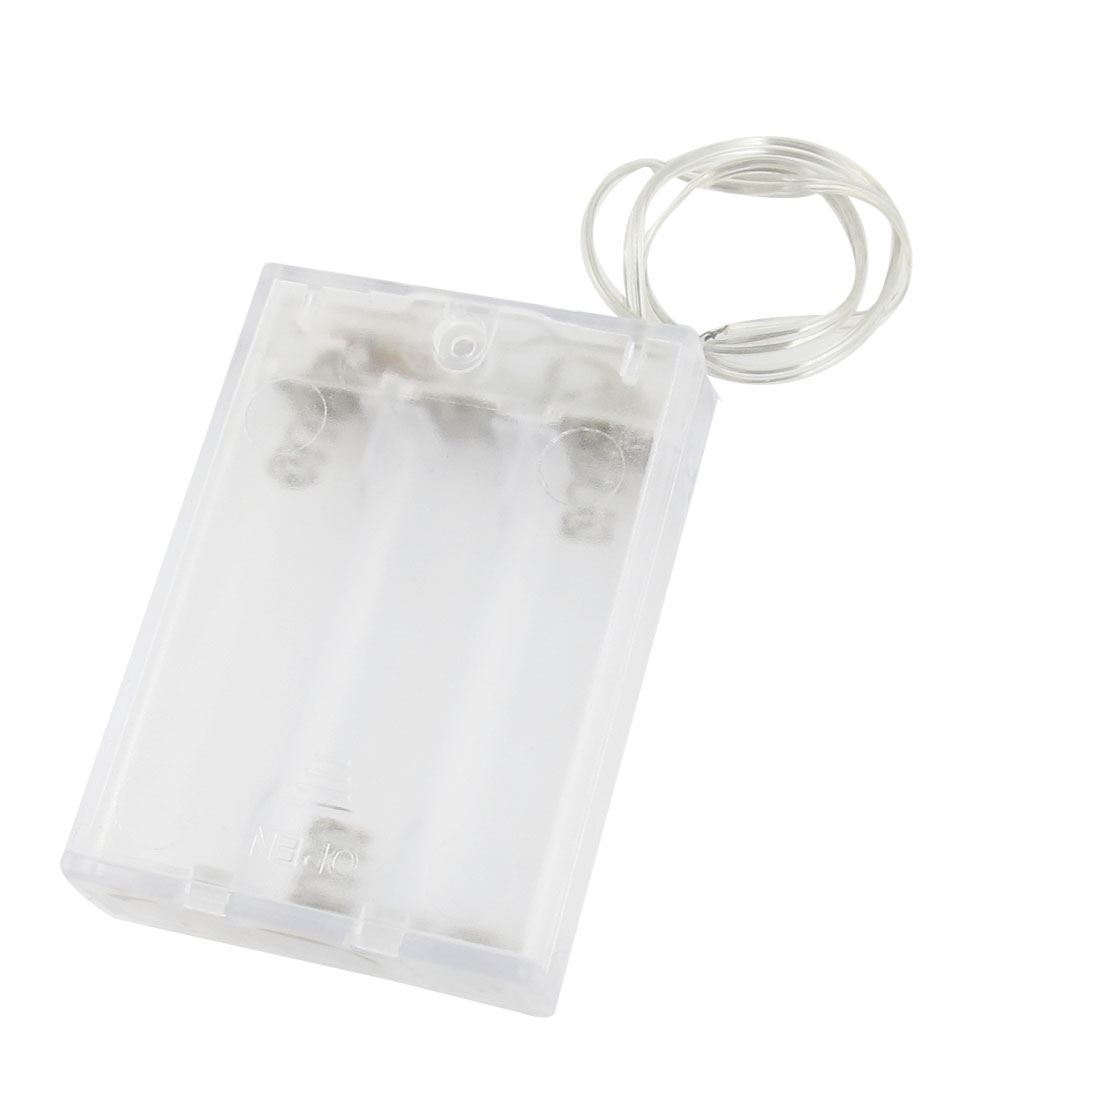 Clear Flat Tip Battery Box Storage Case Holder for 3 x AA Batteries